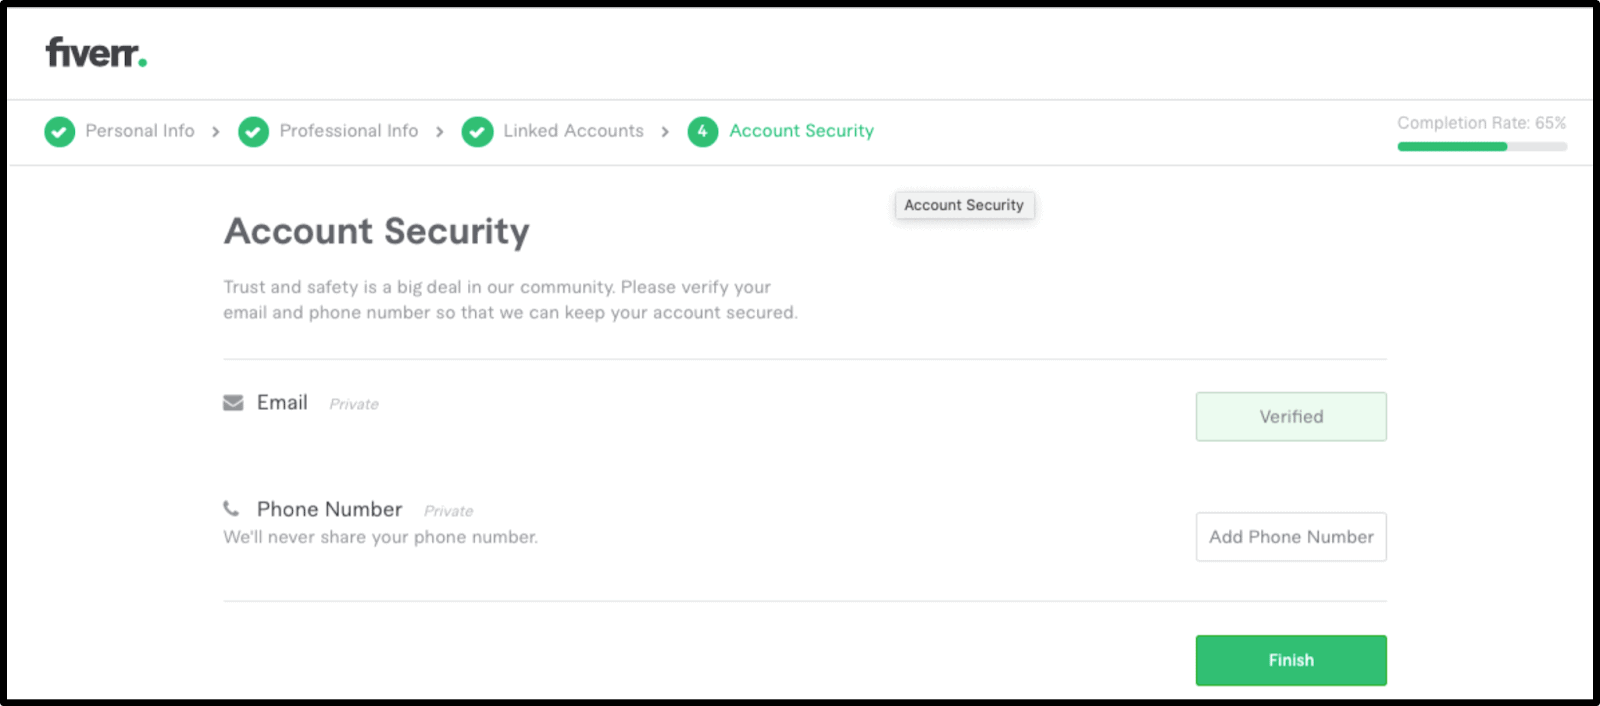 Fiverr account security page